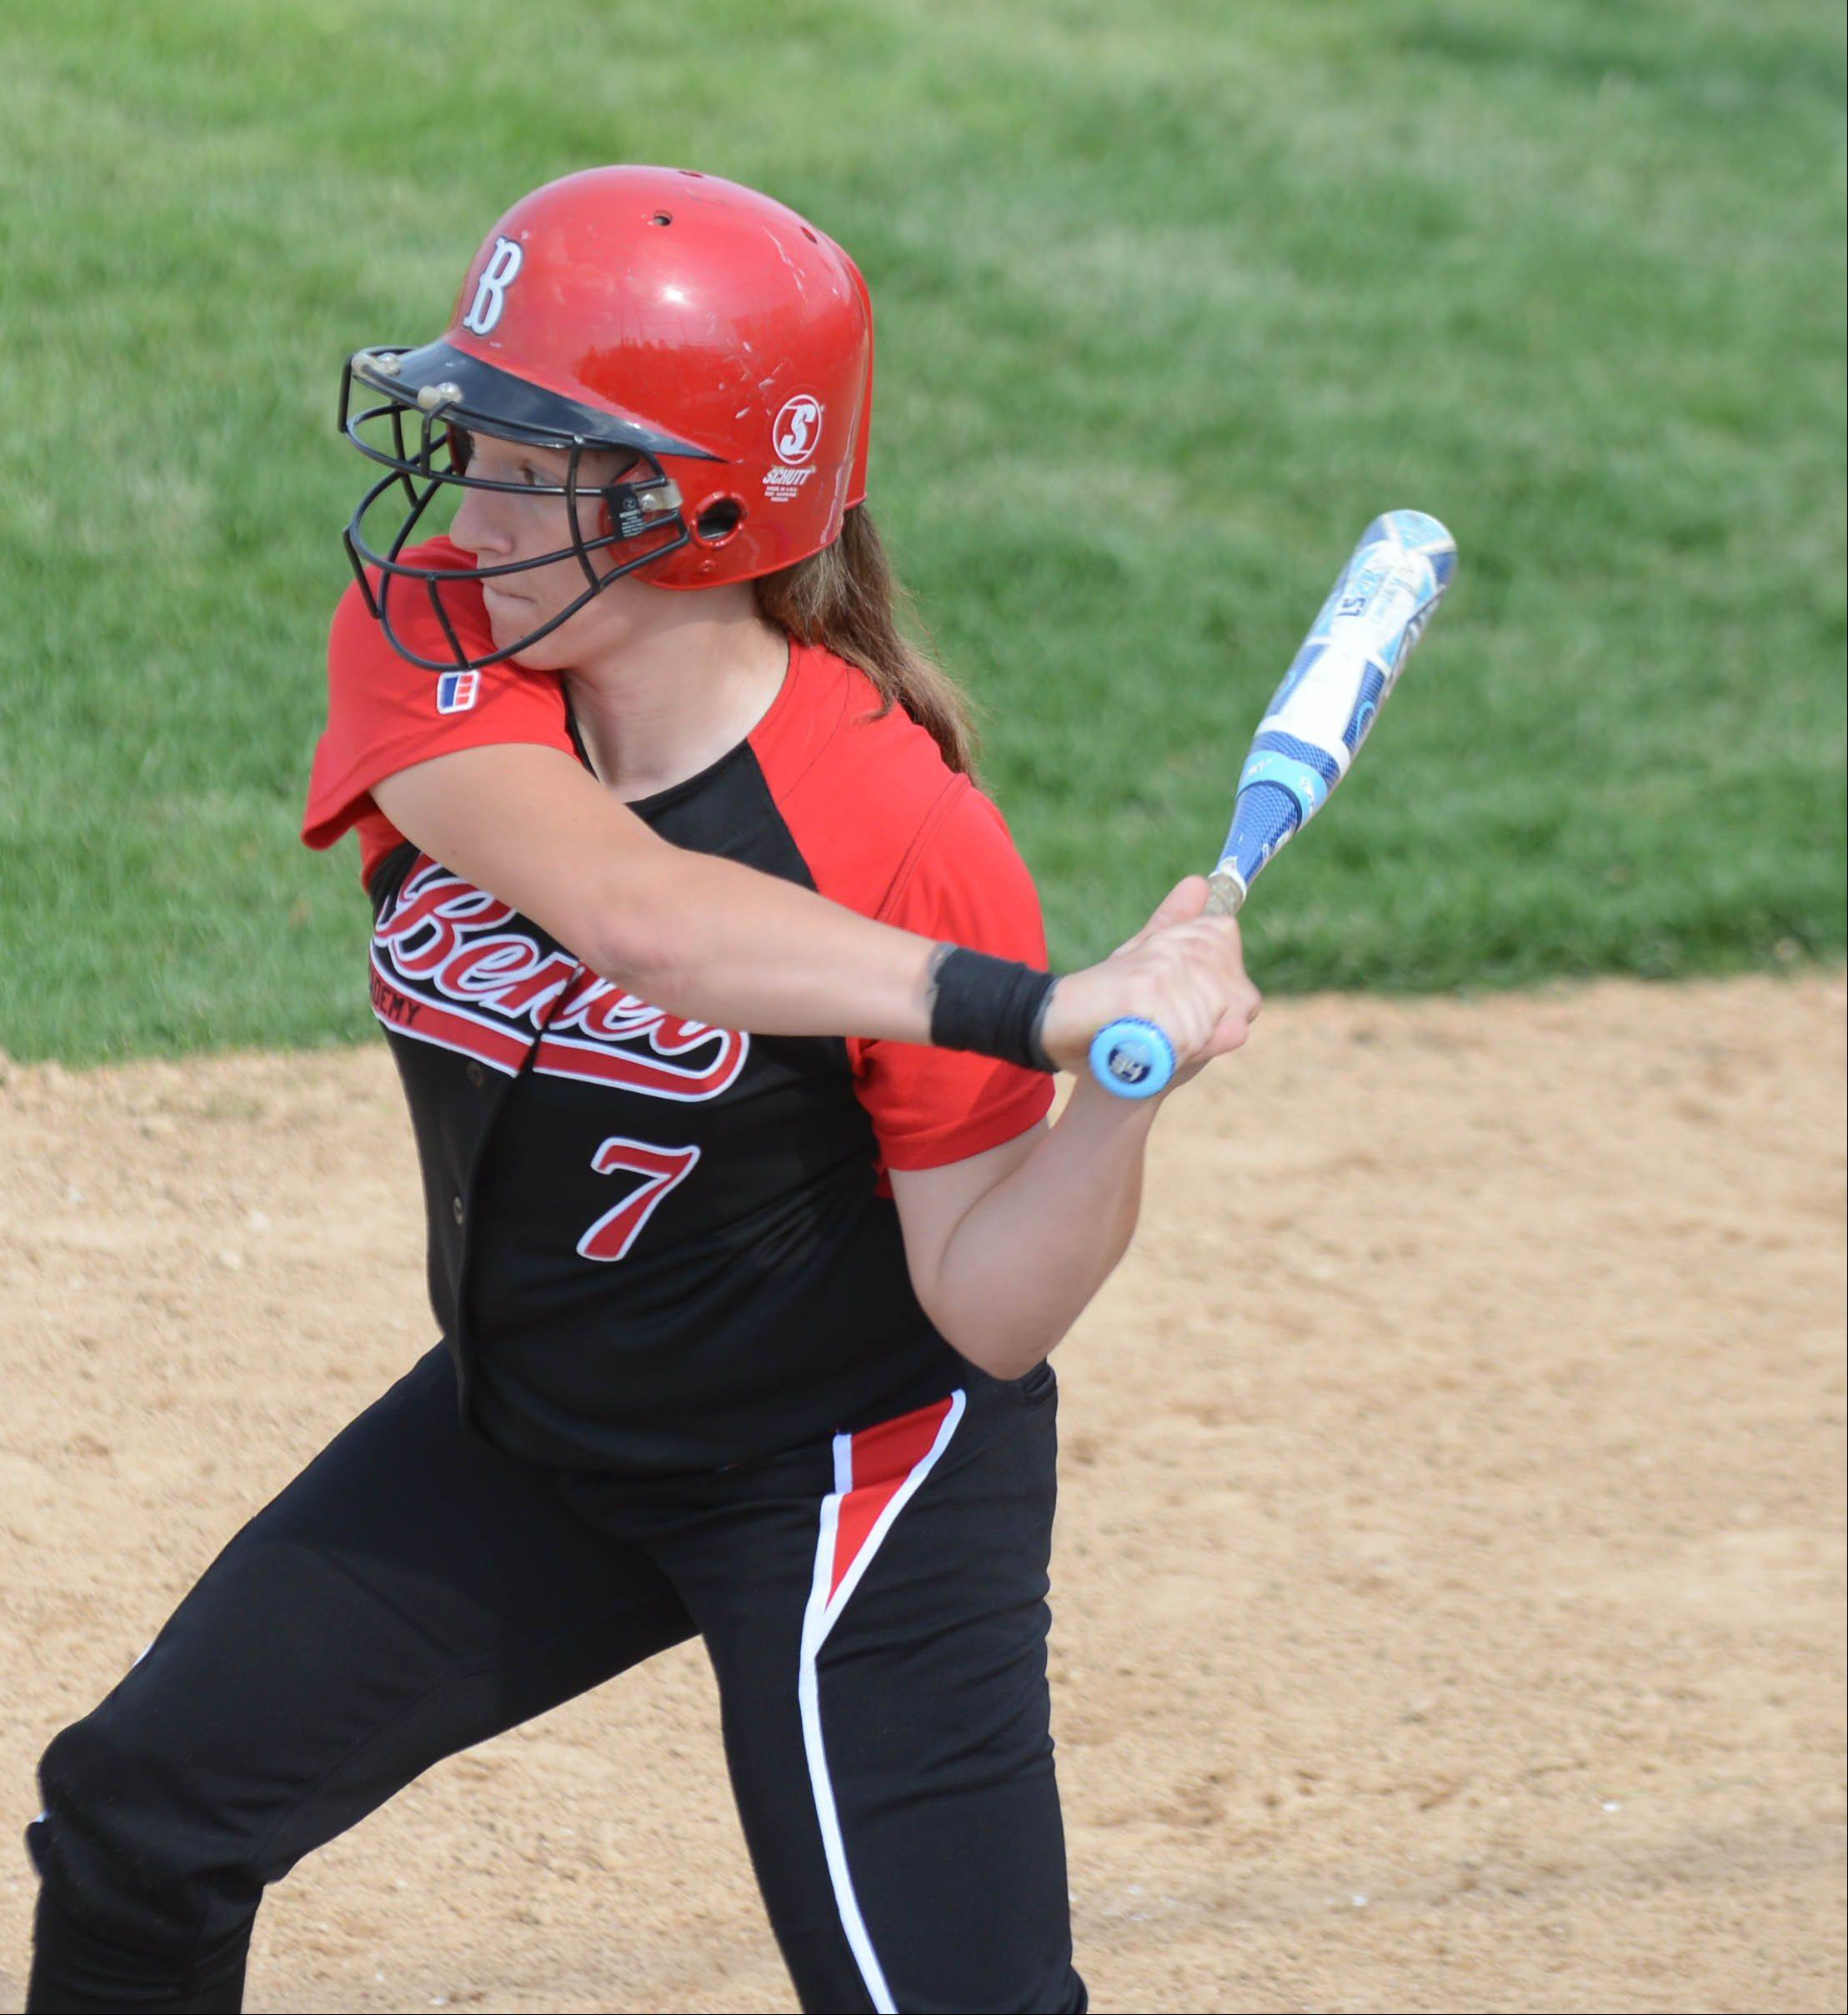 Stephanie Abello of Benet takes a cut during the Class 4A Neuqua Valley sectional semifinals softball game Wednesday.